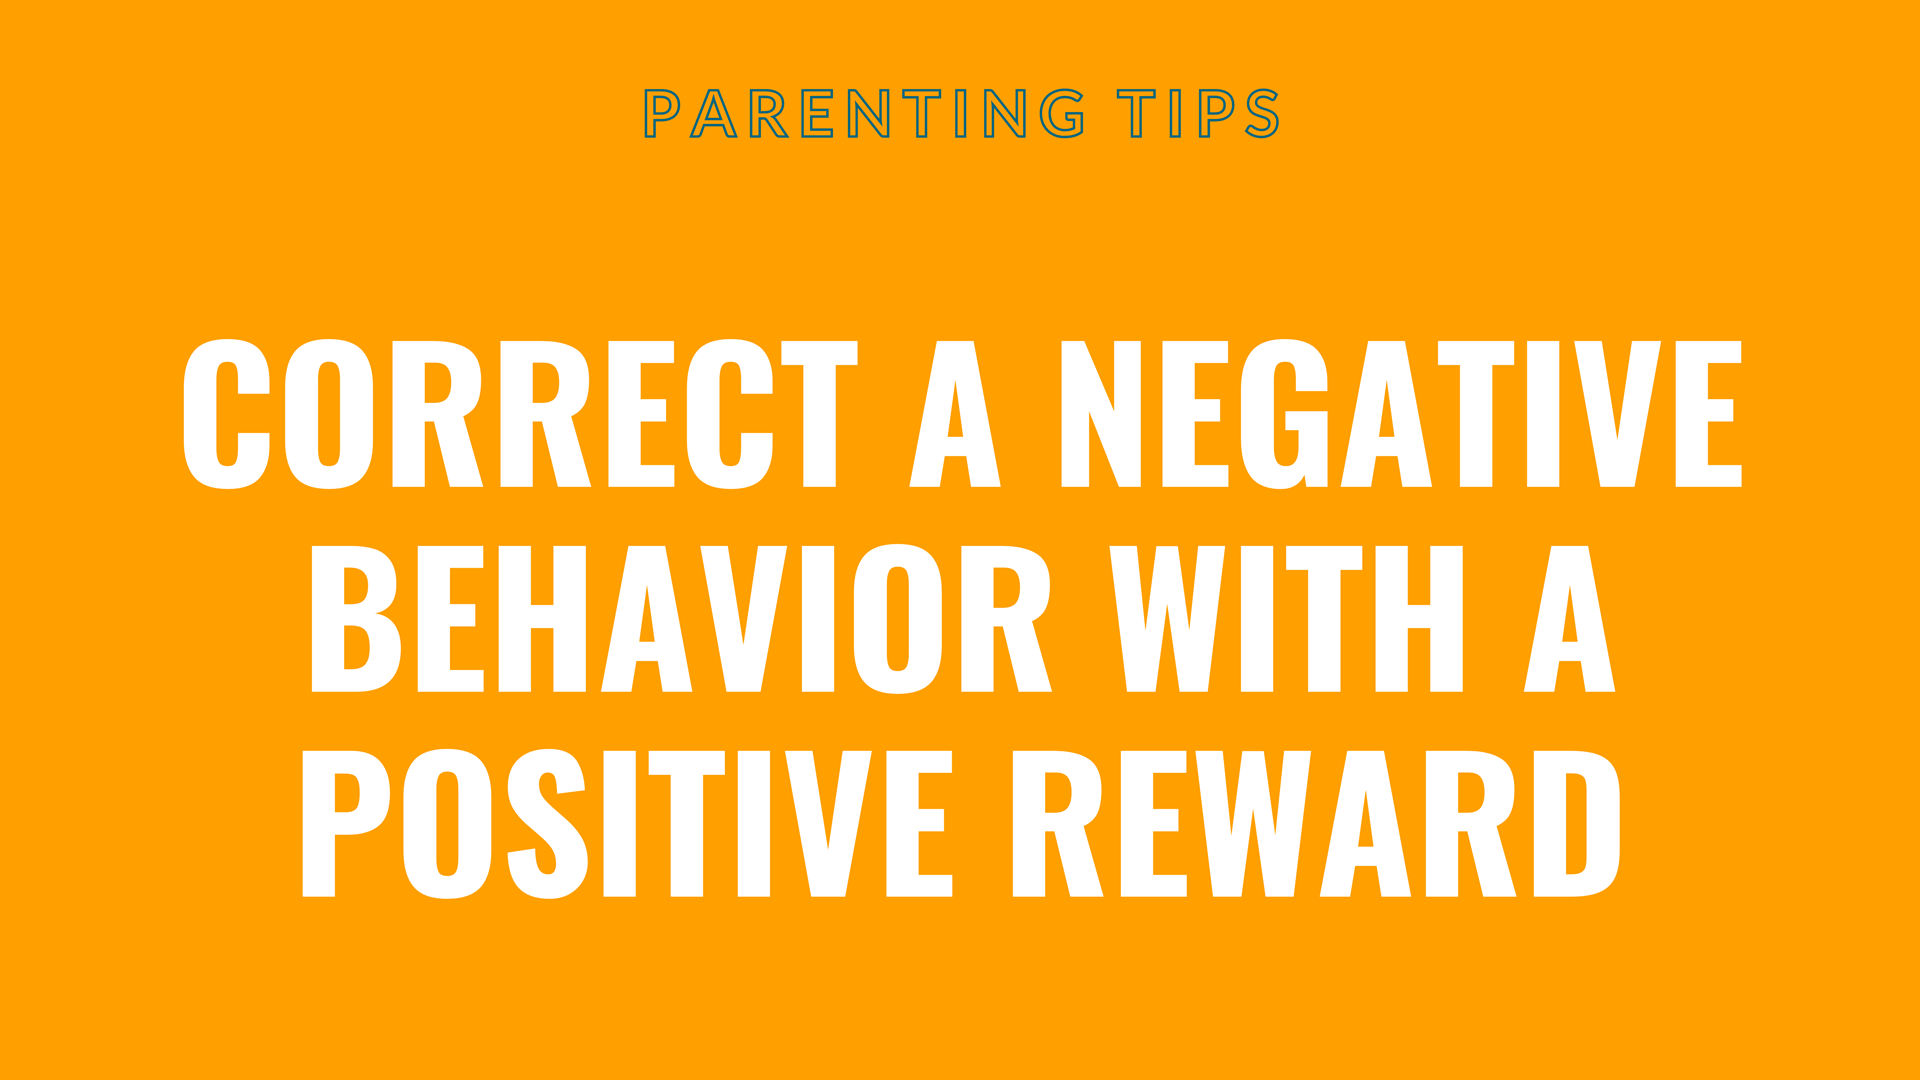 Correct a negative behavior with a positive rewards